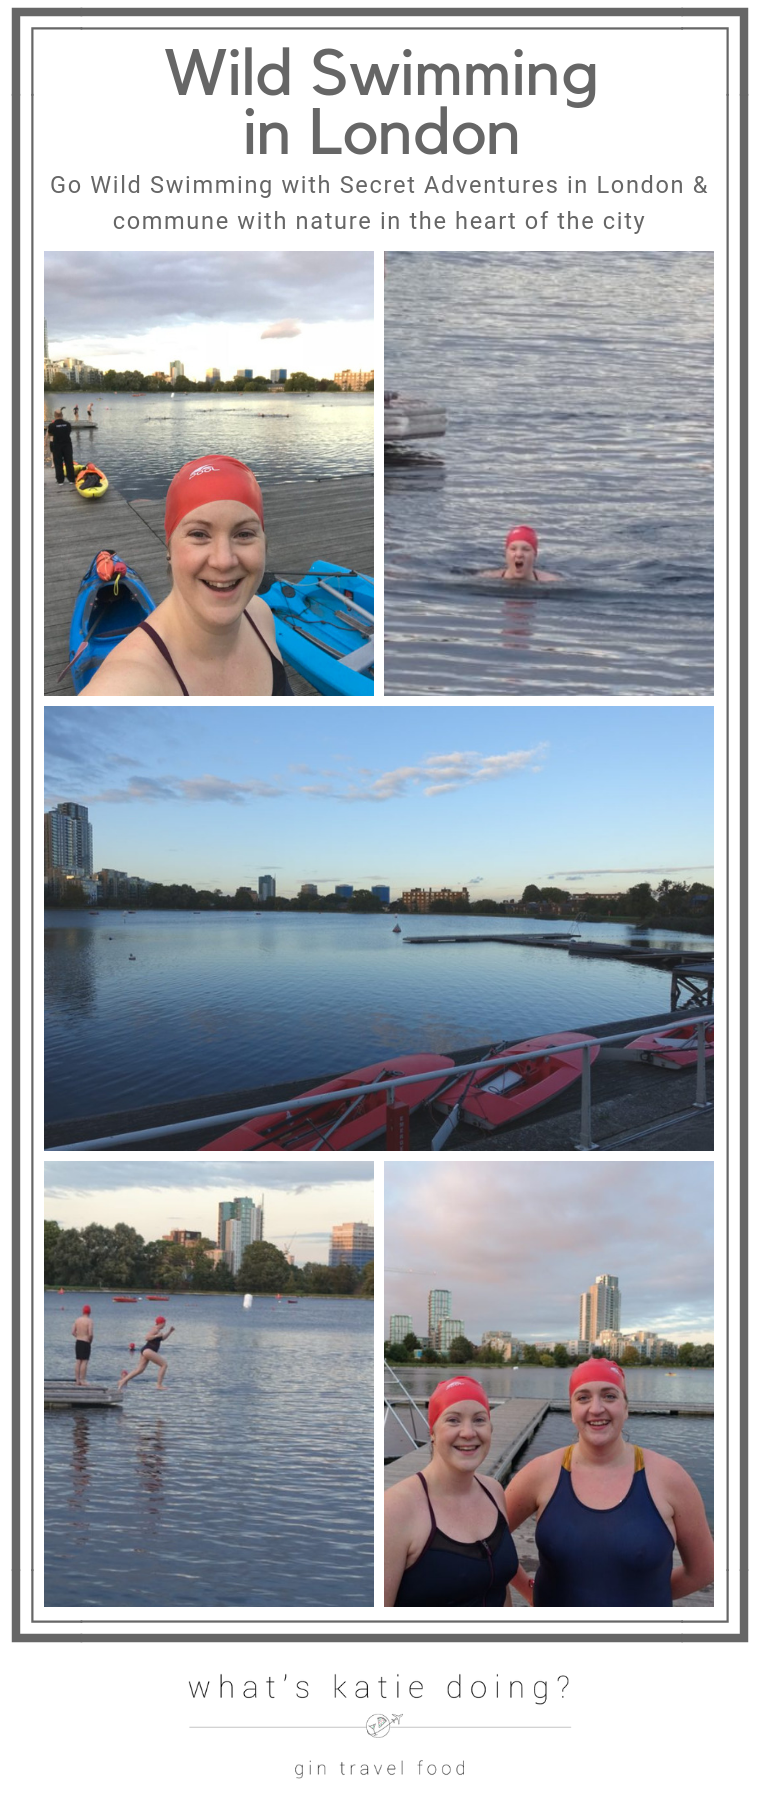 Wild Swimming in London, with Secret Adventures the 'cool' thing to do!